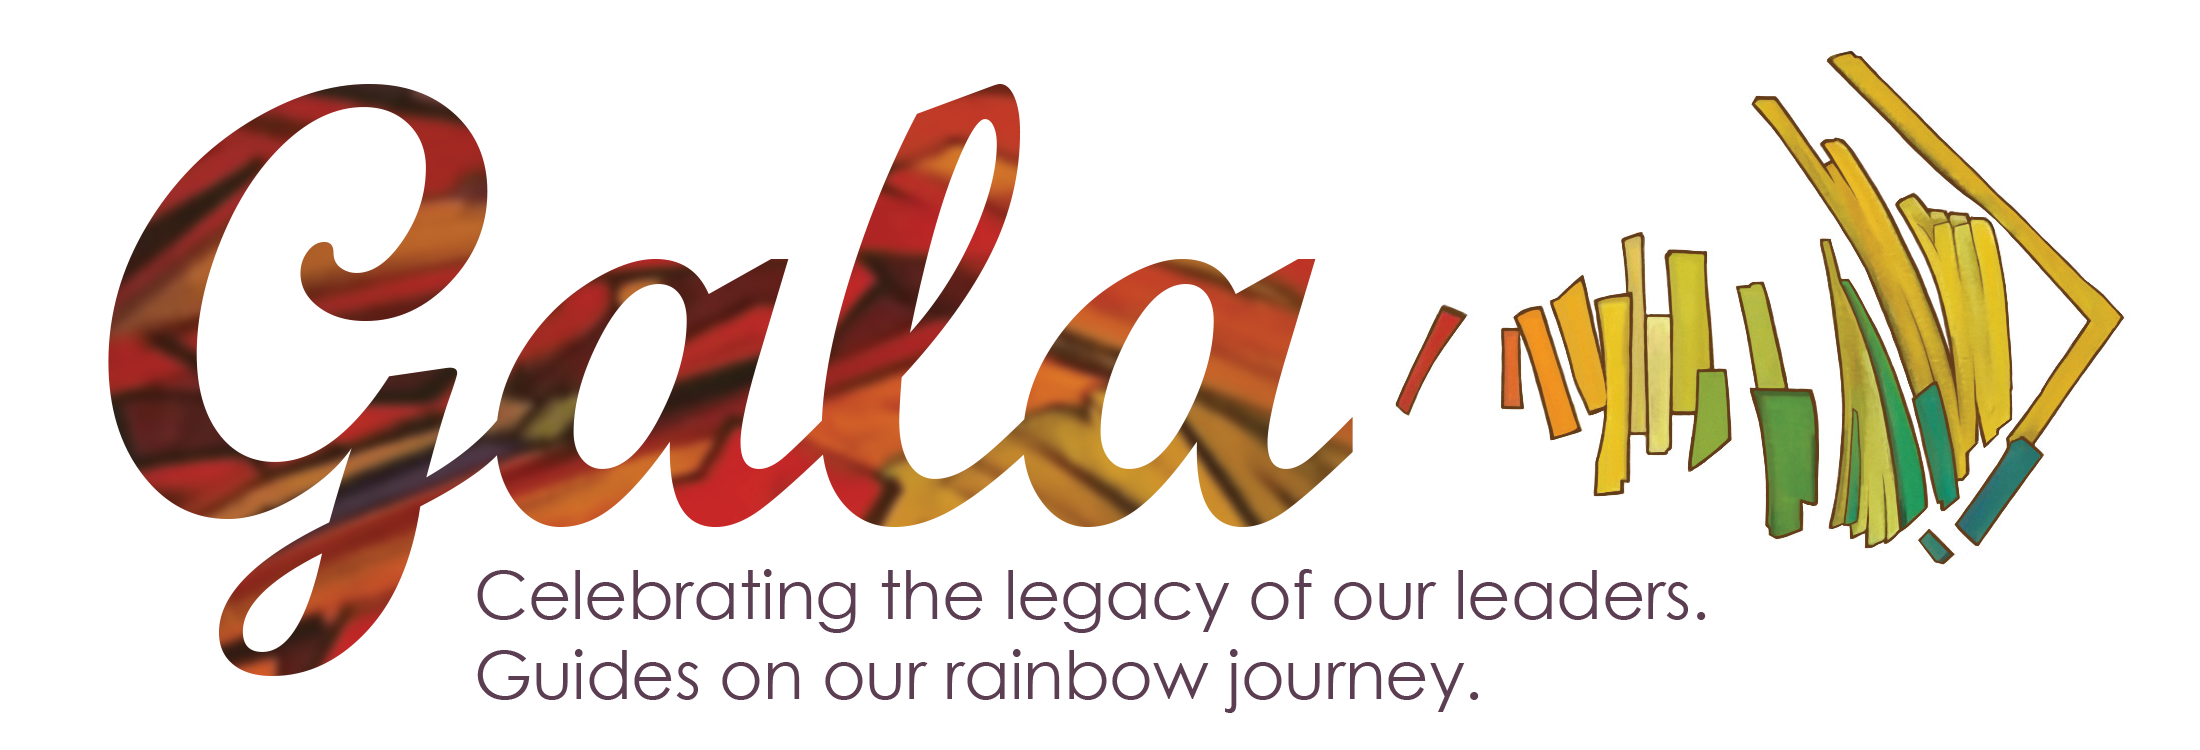 Gala | Celebrating the legacy of our leaders. Guides along our rainbow journey.